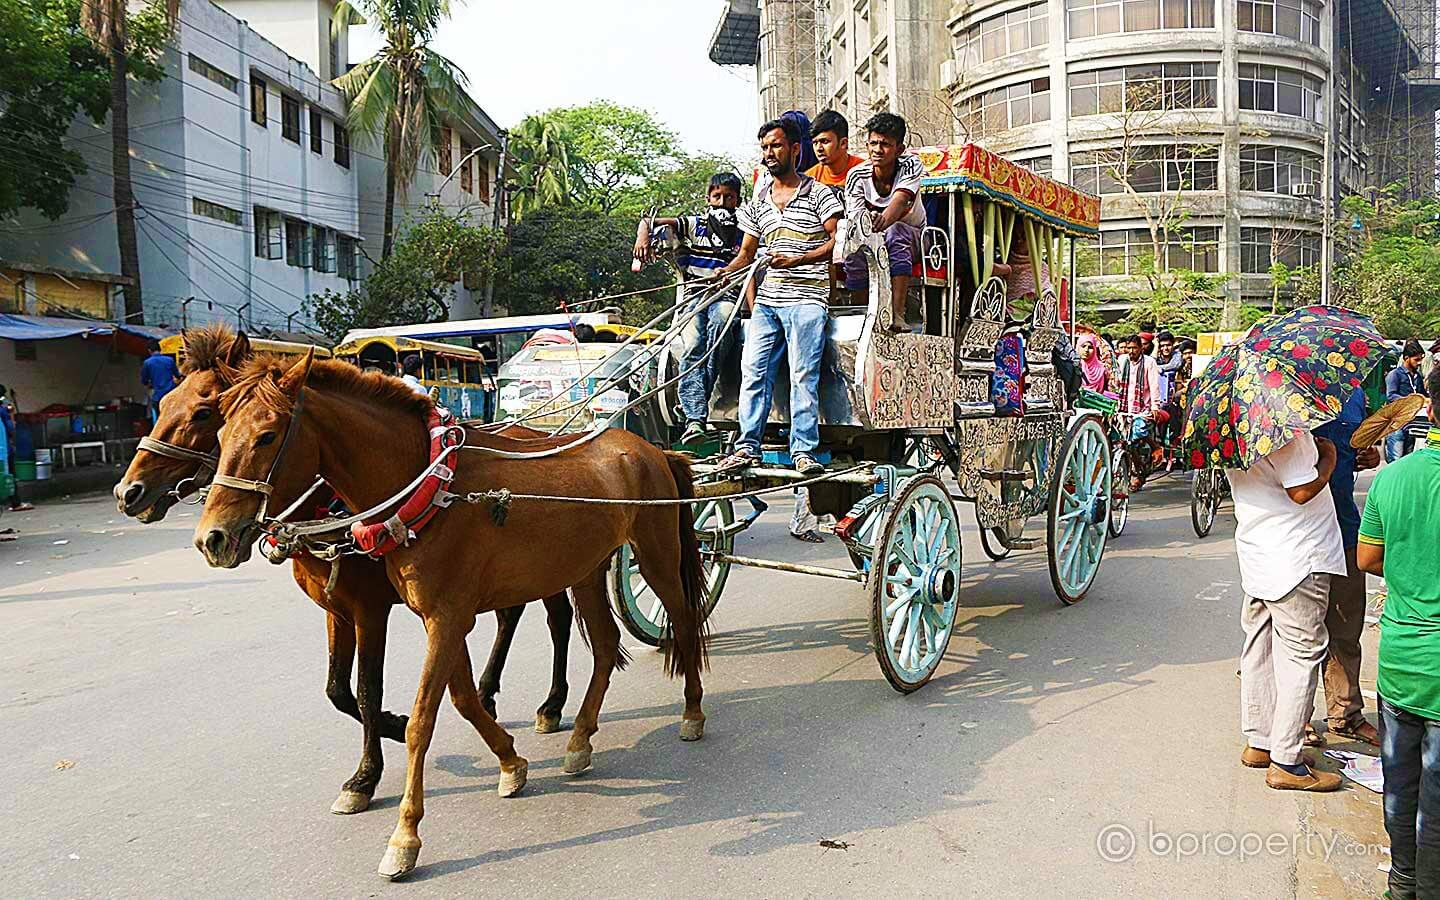 A horse carriage carrying passengers in the streets of old Dhaka